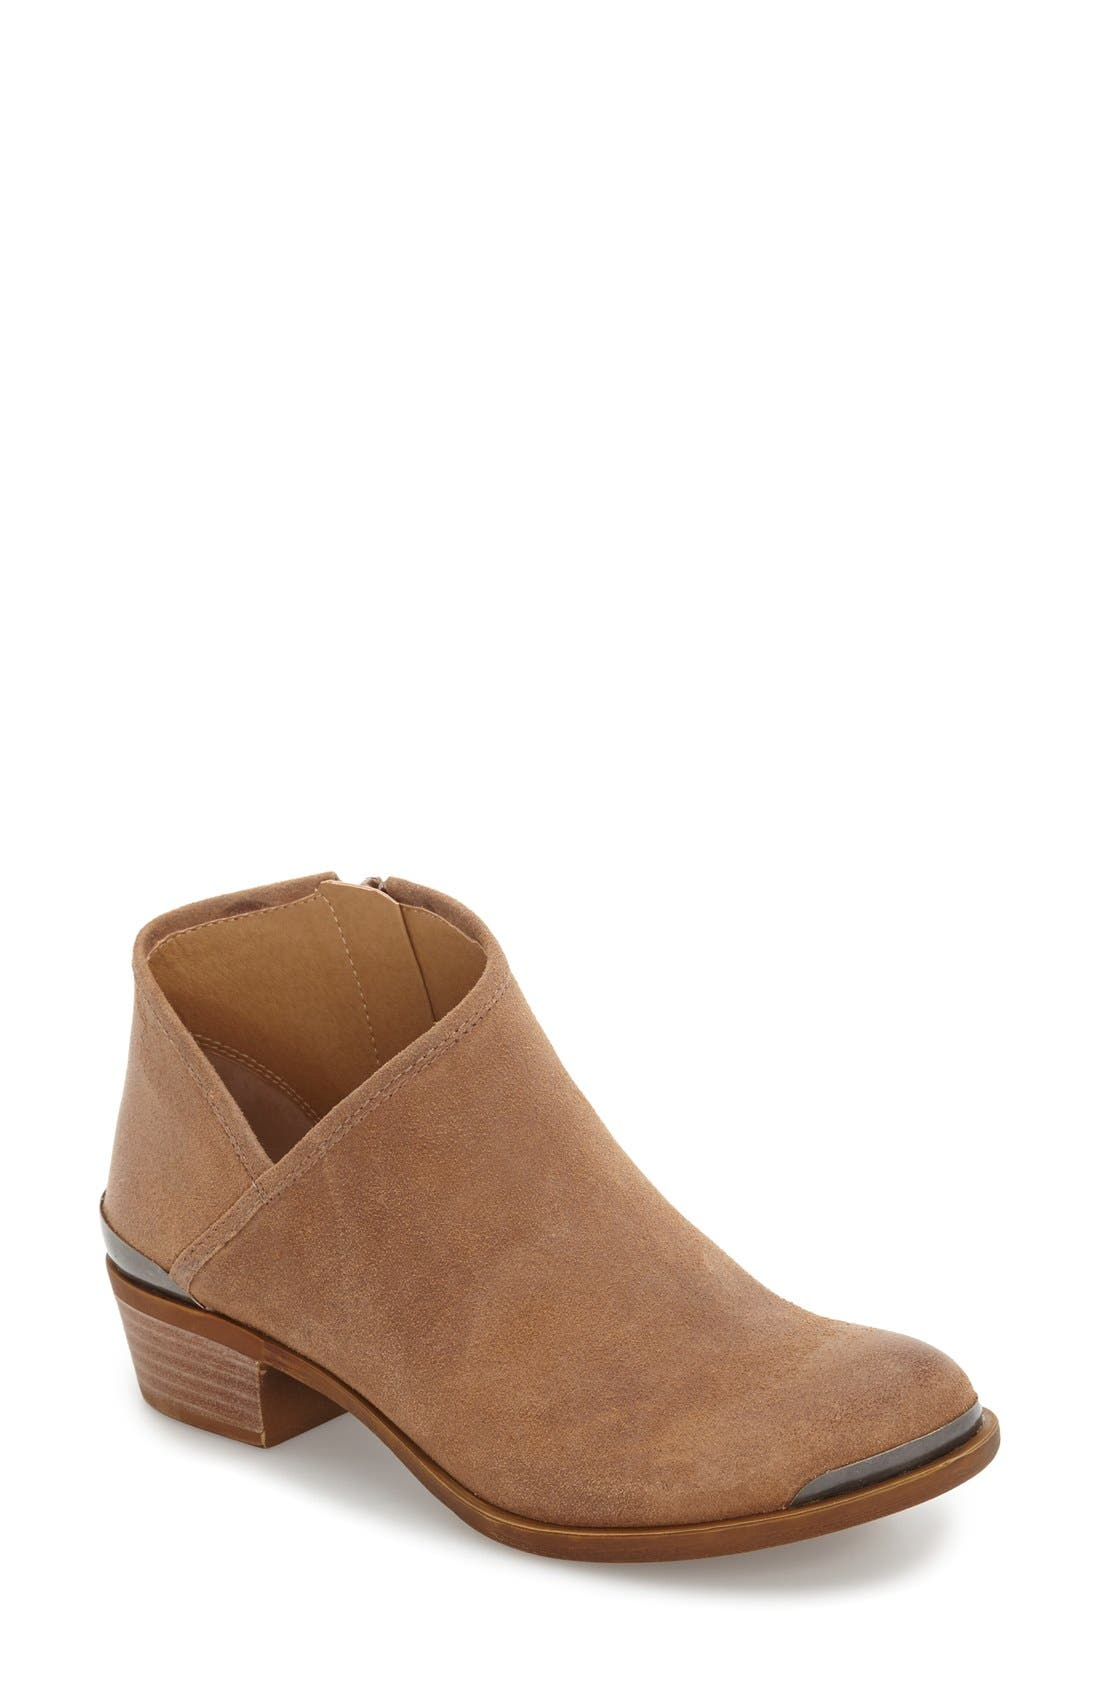 Alternate Image 1 Selected - Lucky Brand Breeza Asymmetrical Bootie (Women)